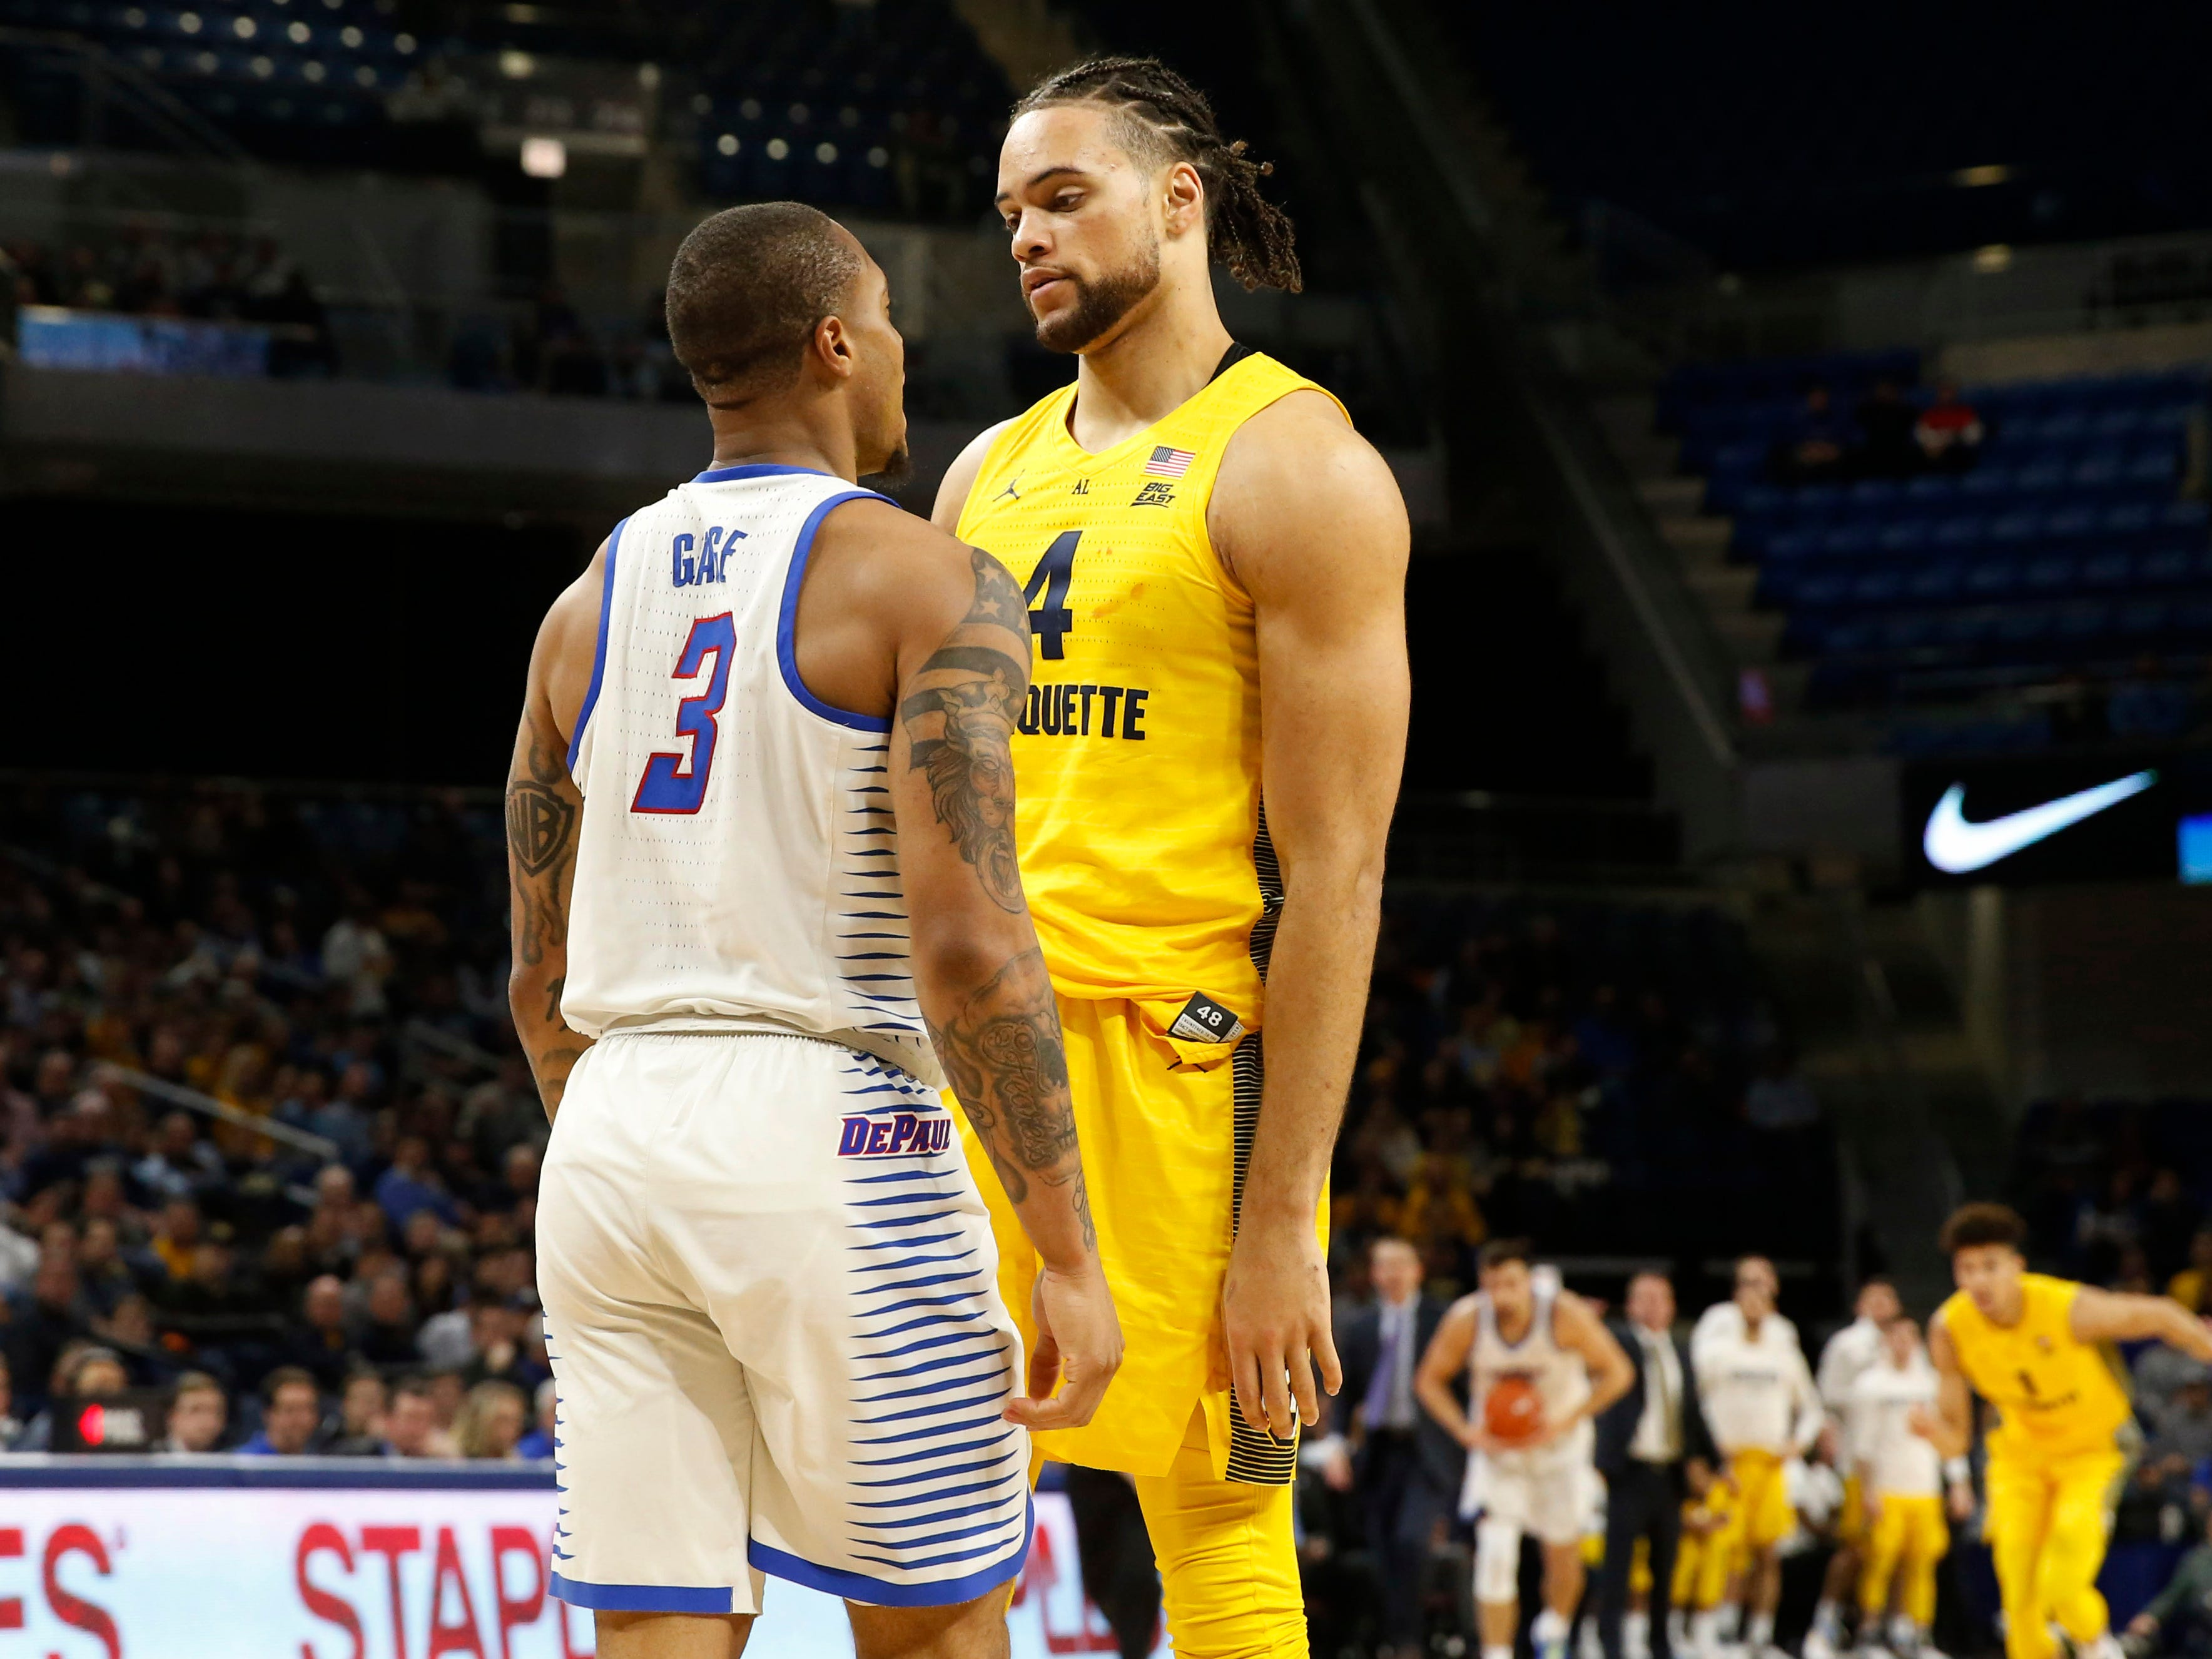 DePaul guard guard Devin Gage  and Marquette Golden Eagles forward Theo John exchange words during the first half.